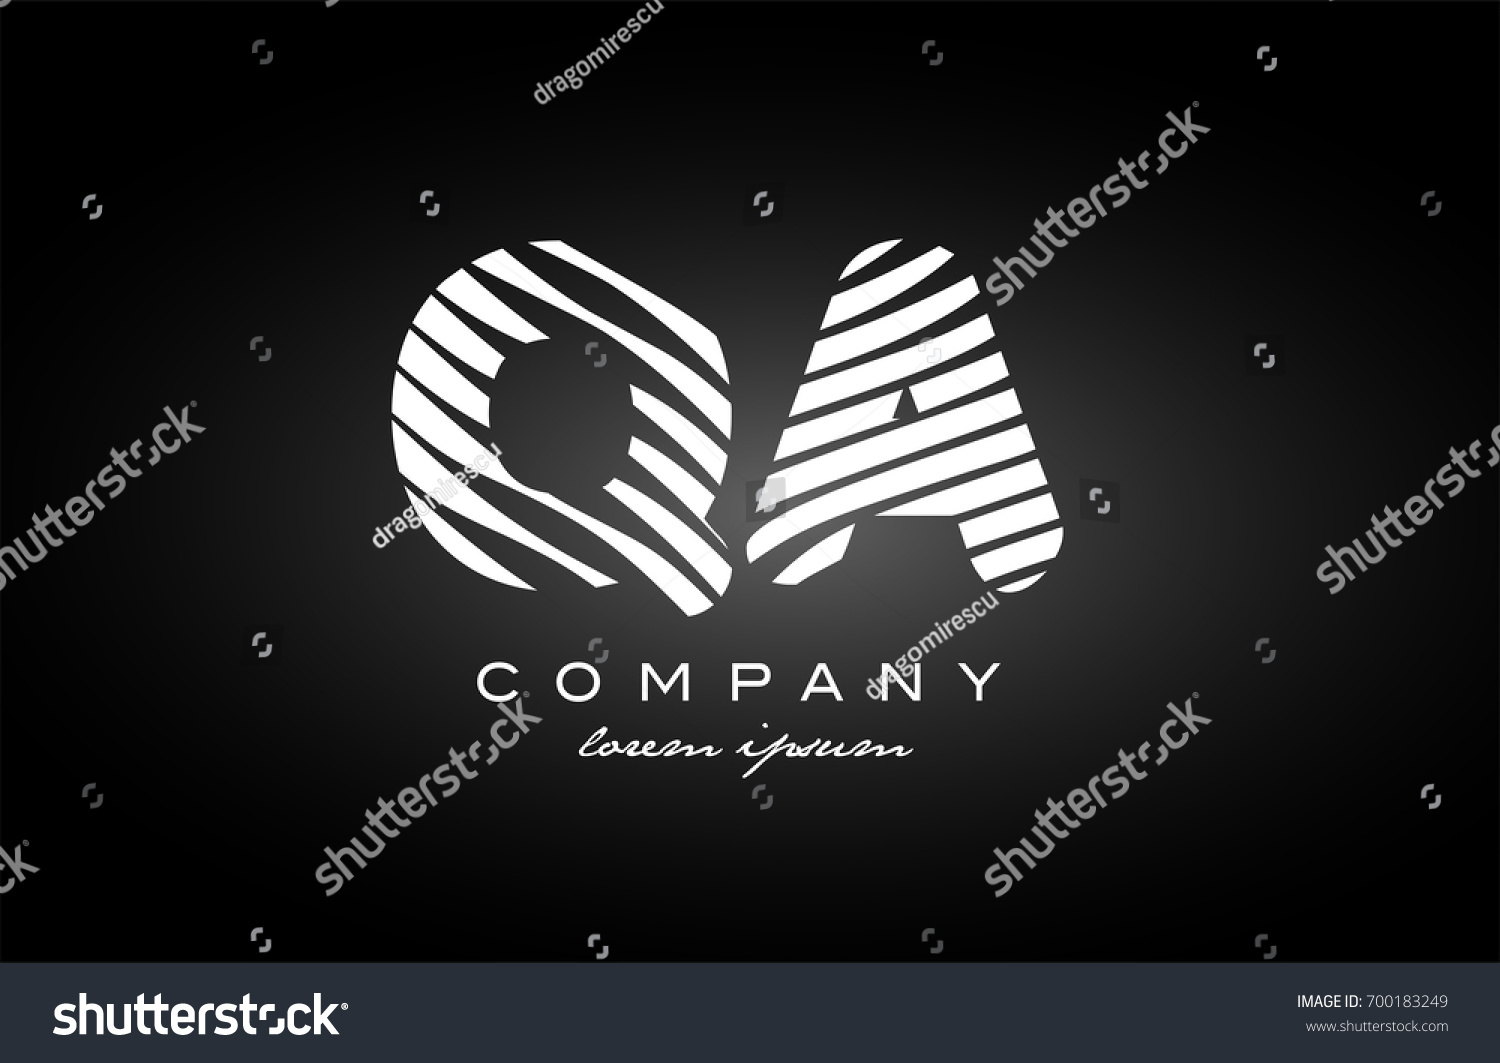 QA Q A letter logo combination black white alphabet vector creative company  icon design template modern